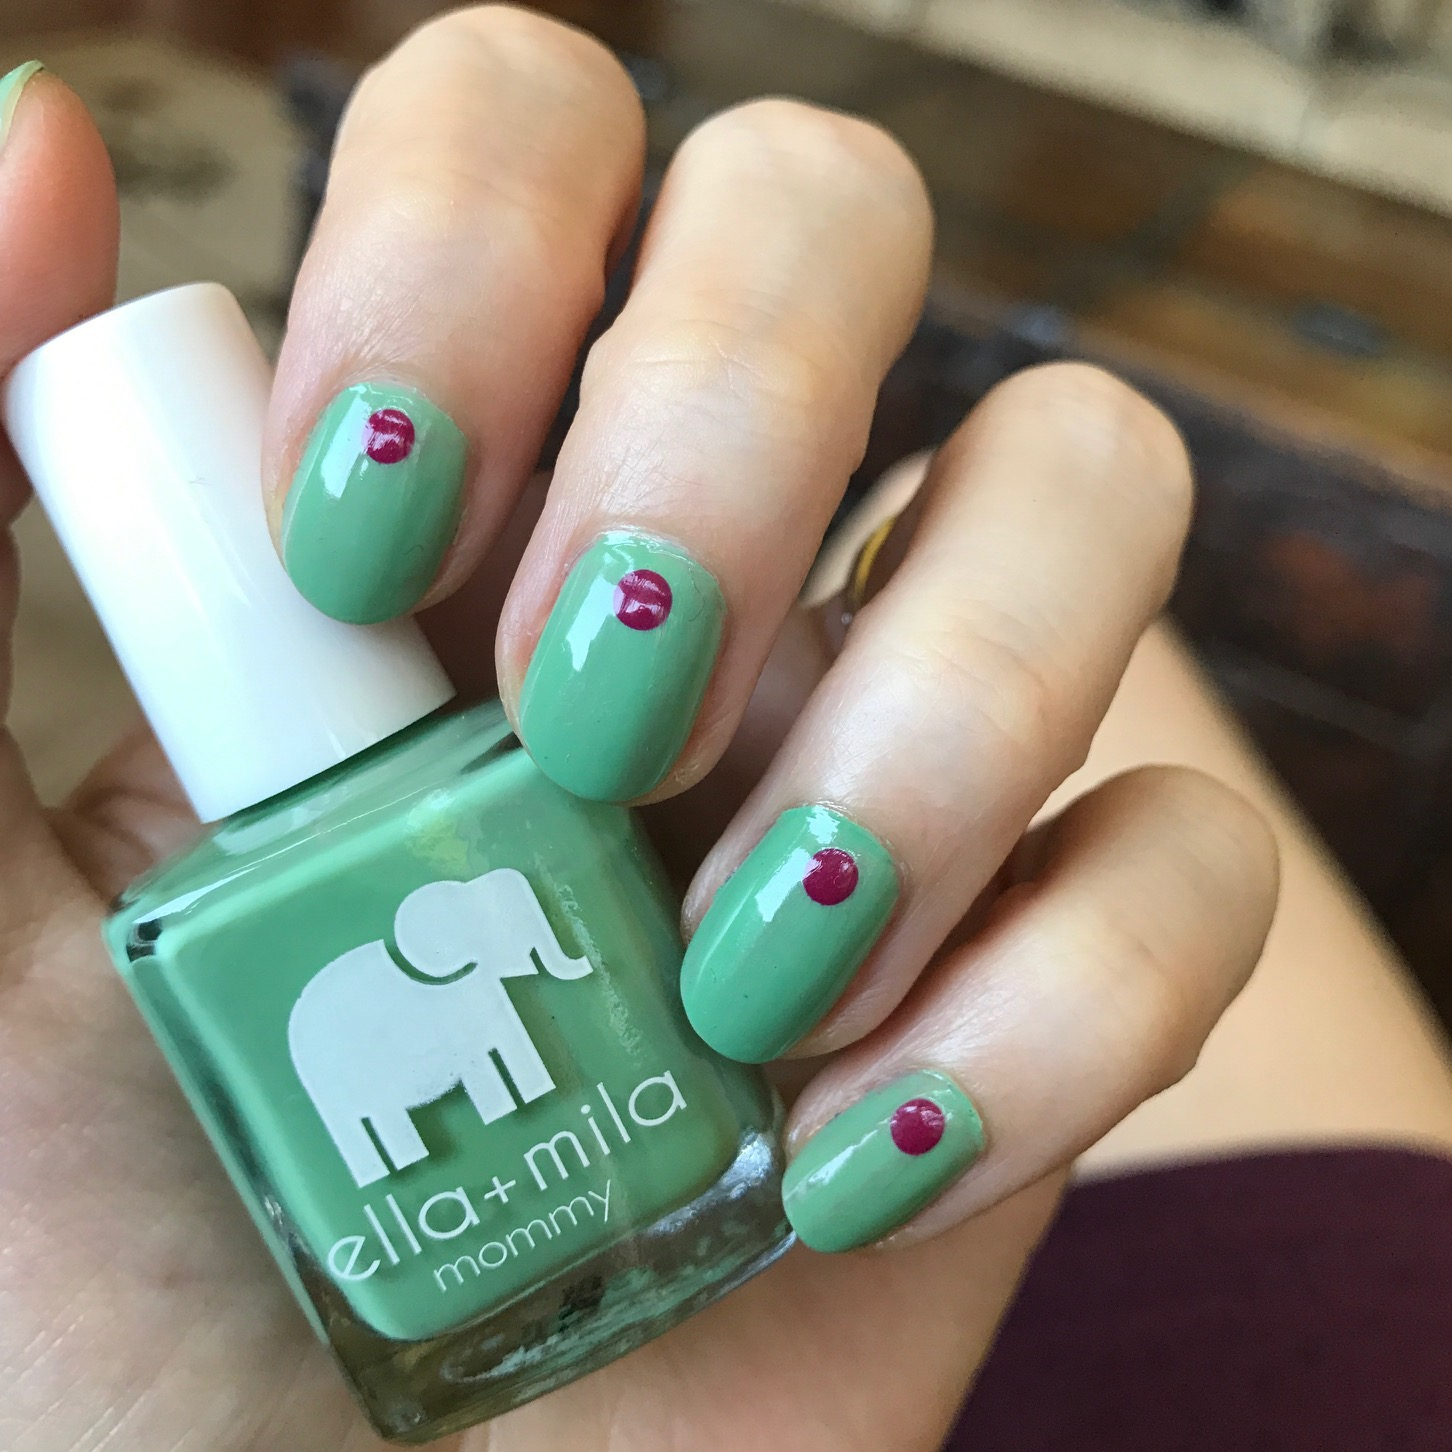 ella mila i mint it nail polish